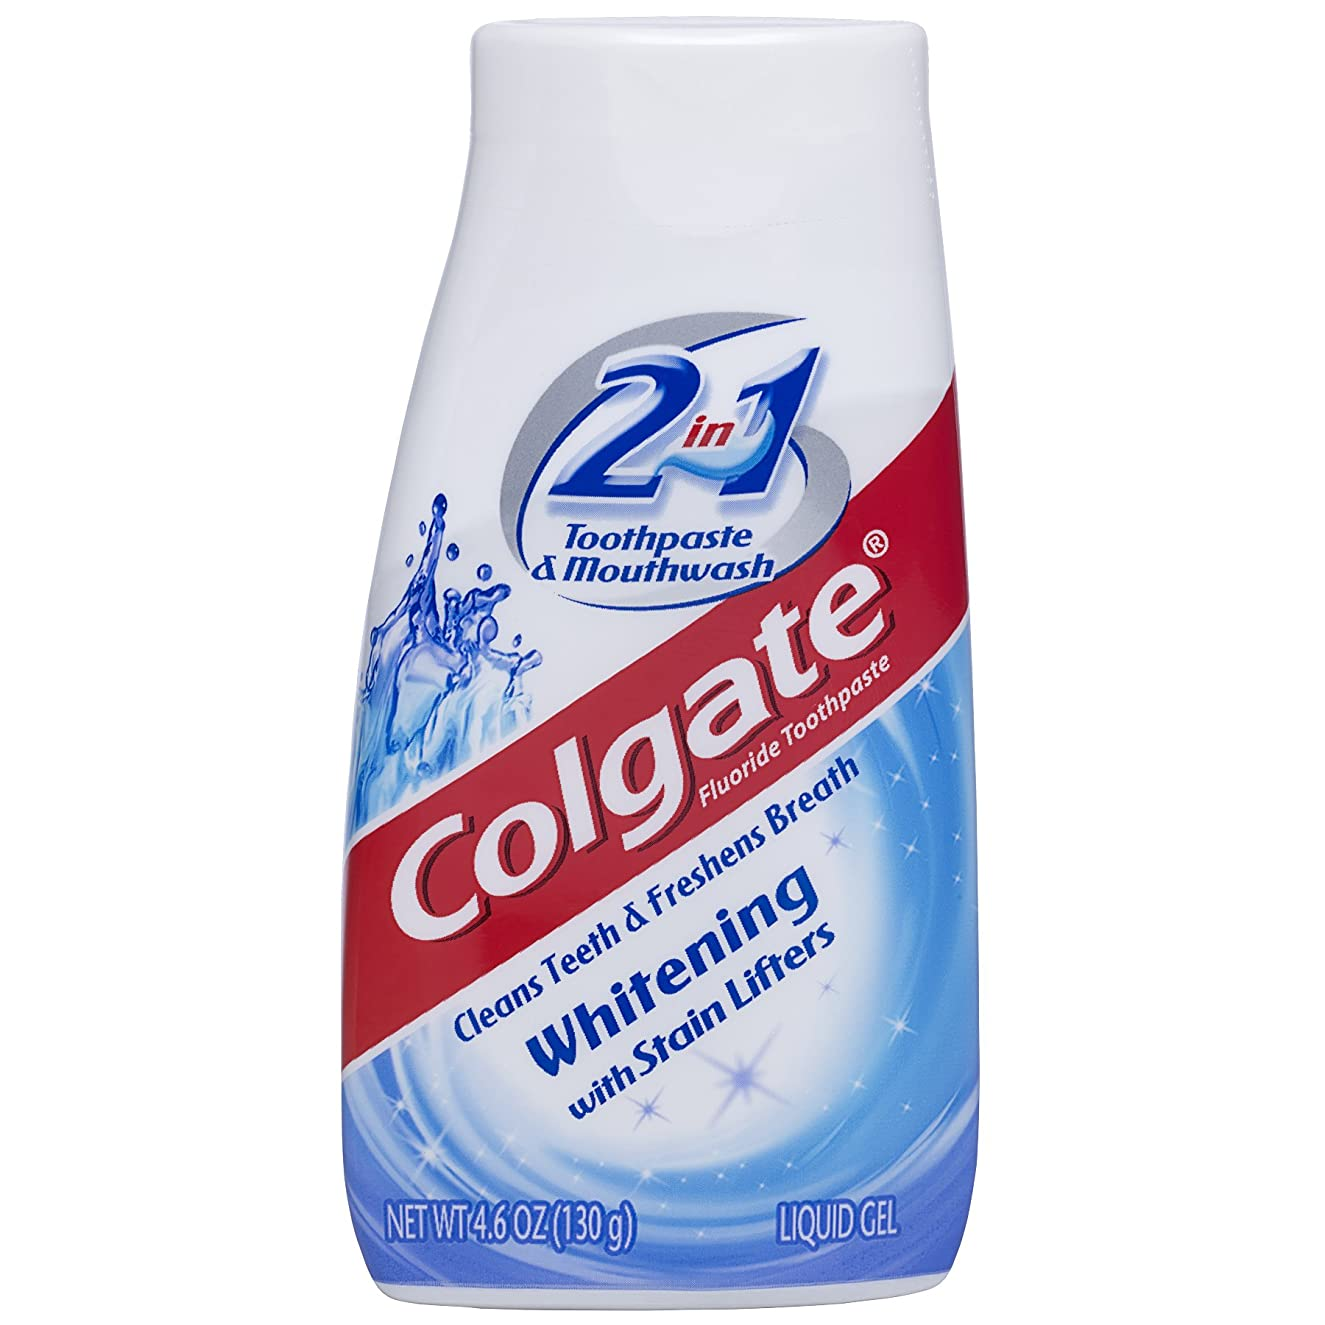 ポーンスカイ座る海外直送品Colgate 2 In 1 Toothpaste & Mouthwash Whitening, 4.6 oz by Colgate